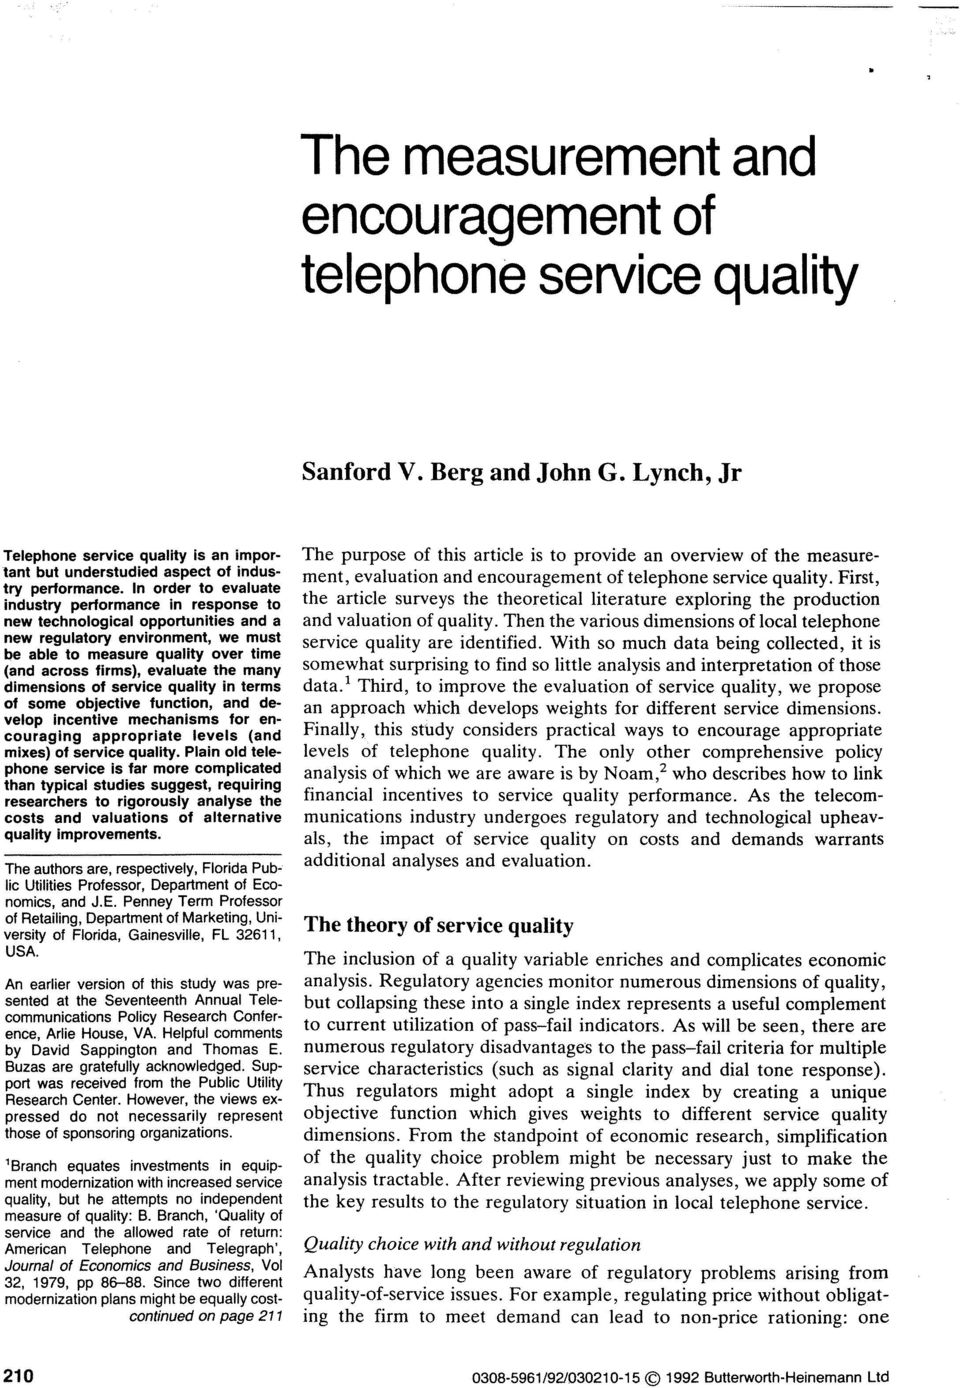 the many dimensions of service quality in terms of some objective function, and develop incentive mechanisms for encouraging appropriate levels (and mixes) of service quality.